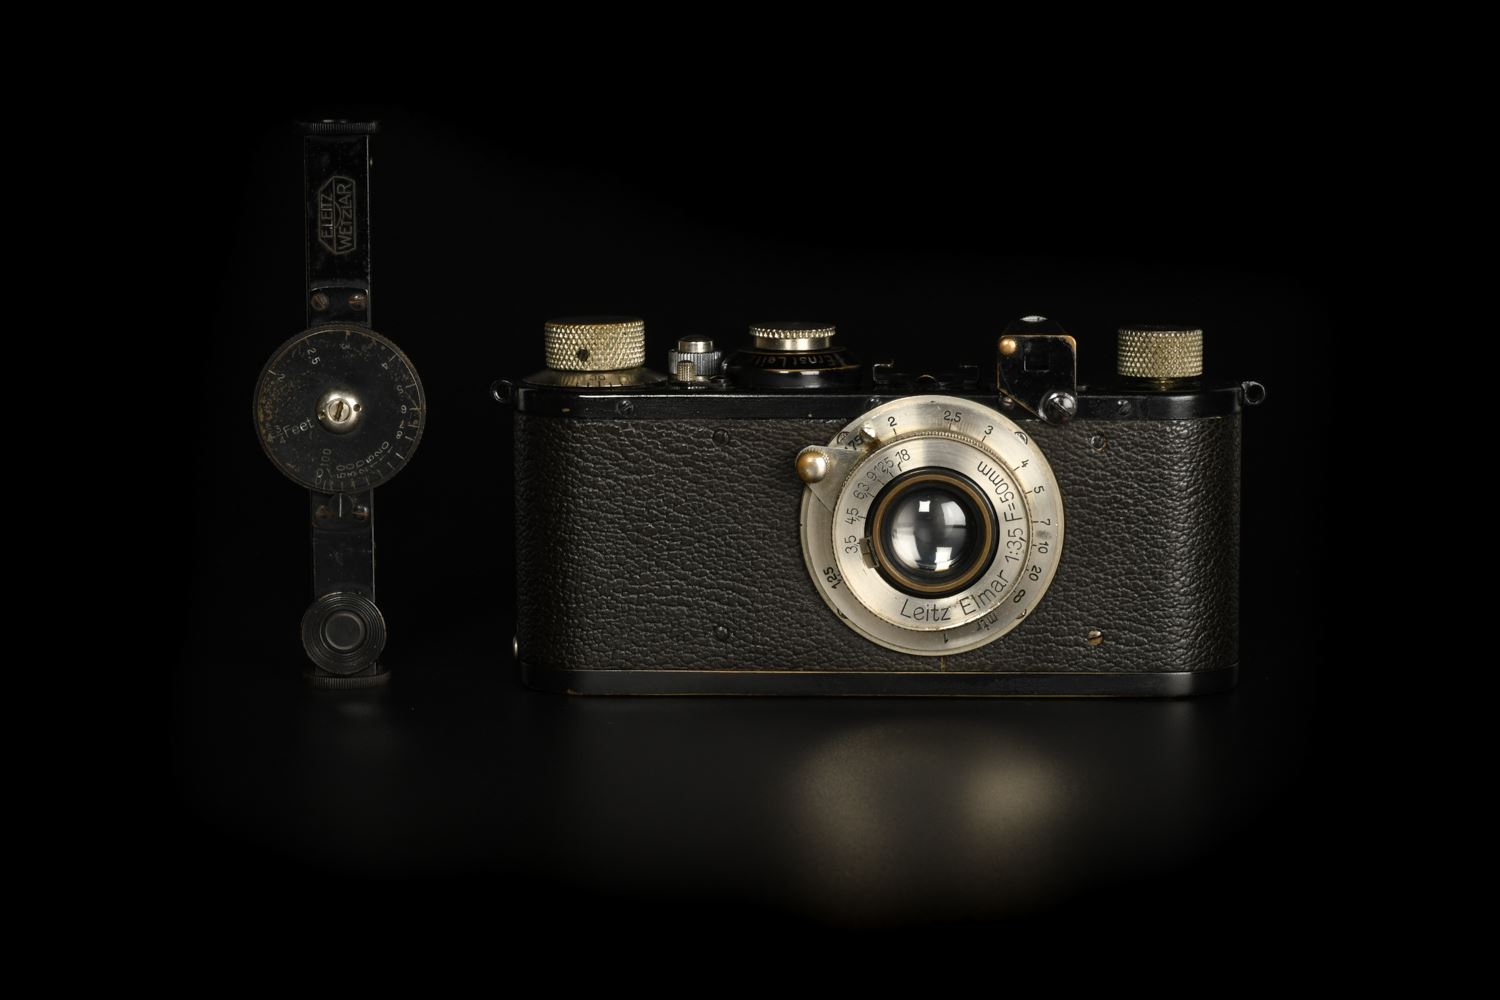 Picture of Leica Standard with FOKIN All Black Rangefinder and Elmar 5cm f/3.5 11 o'clock